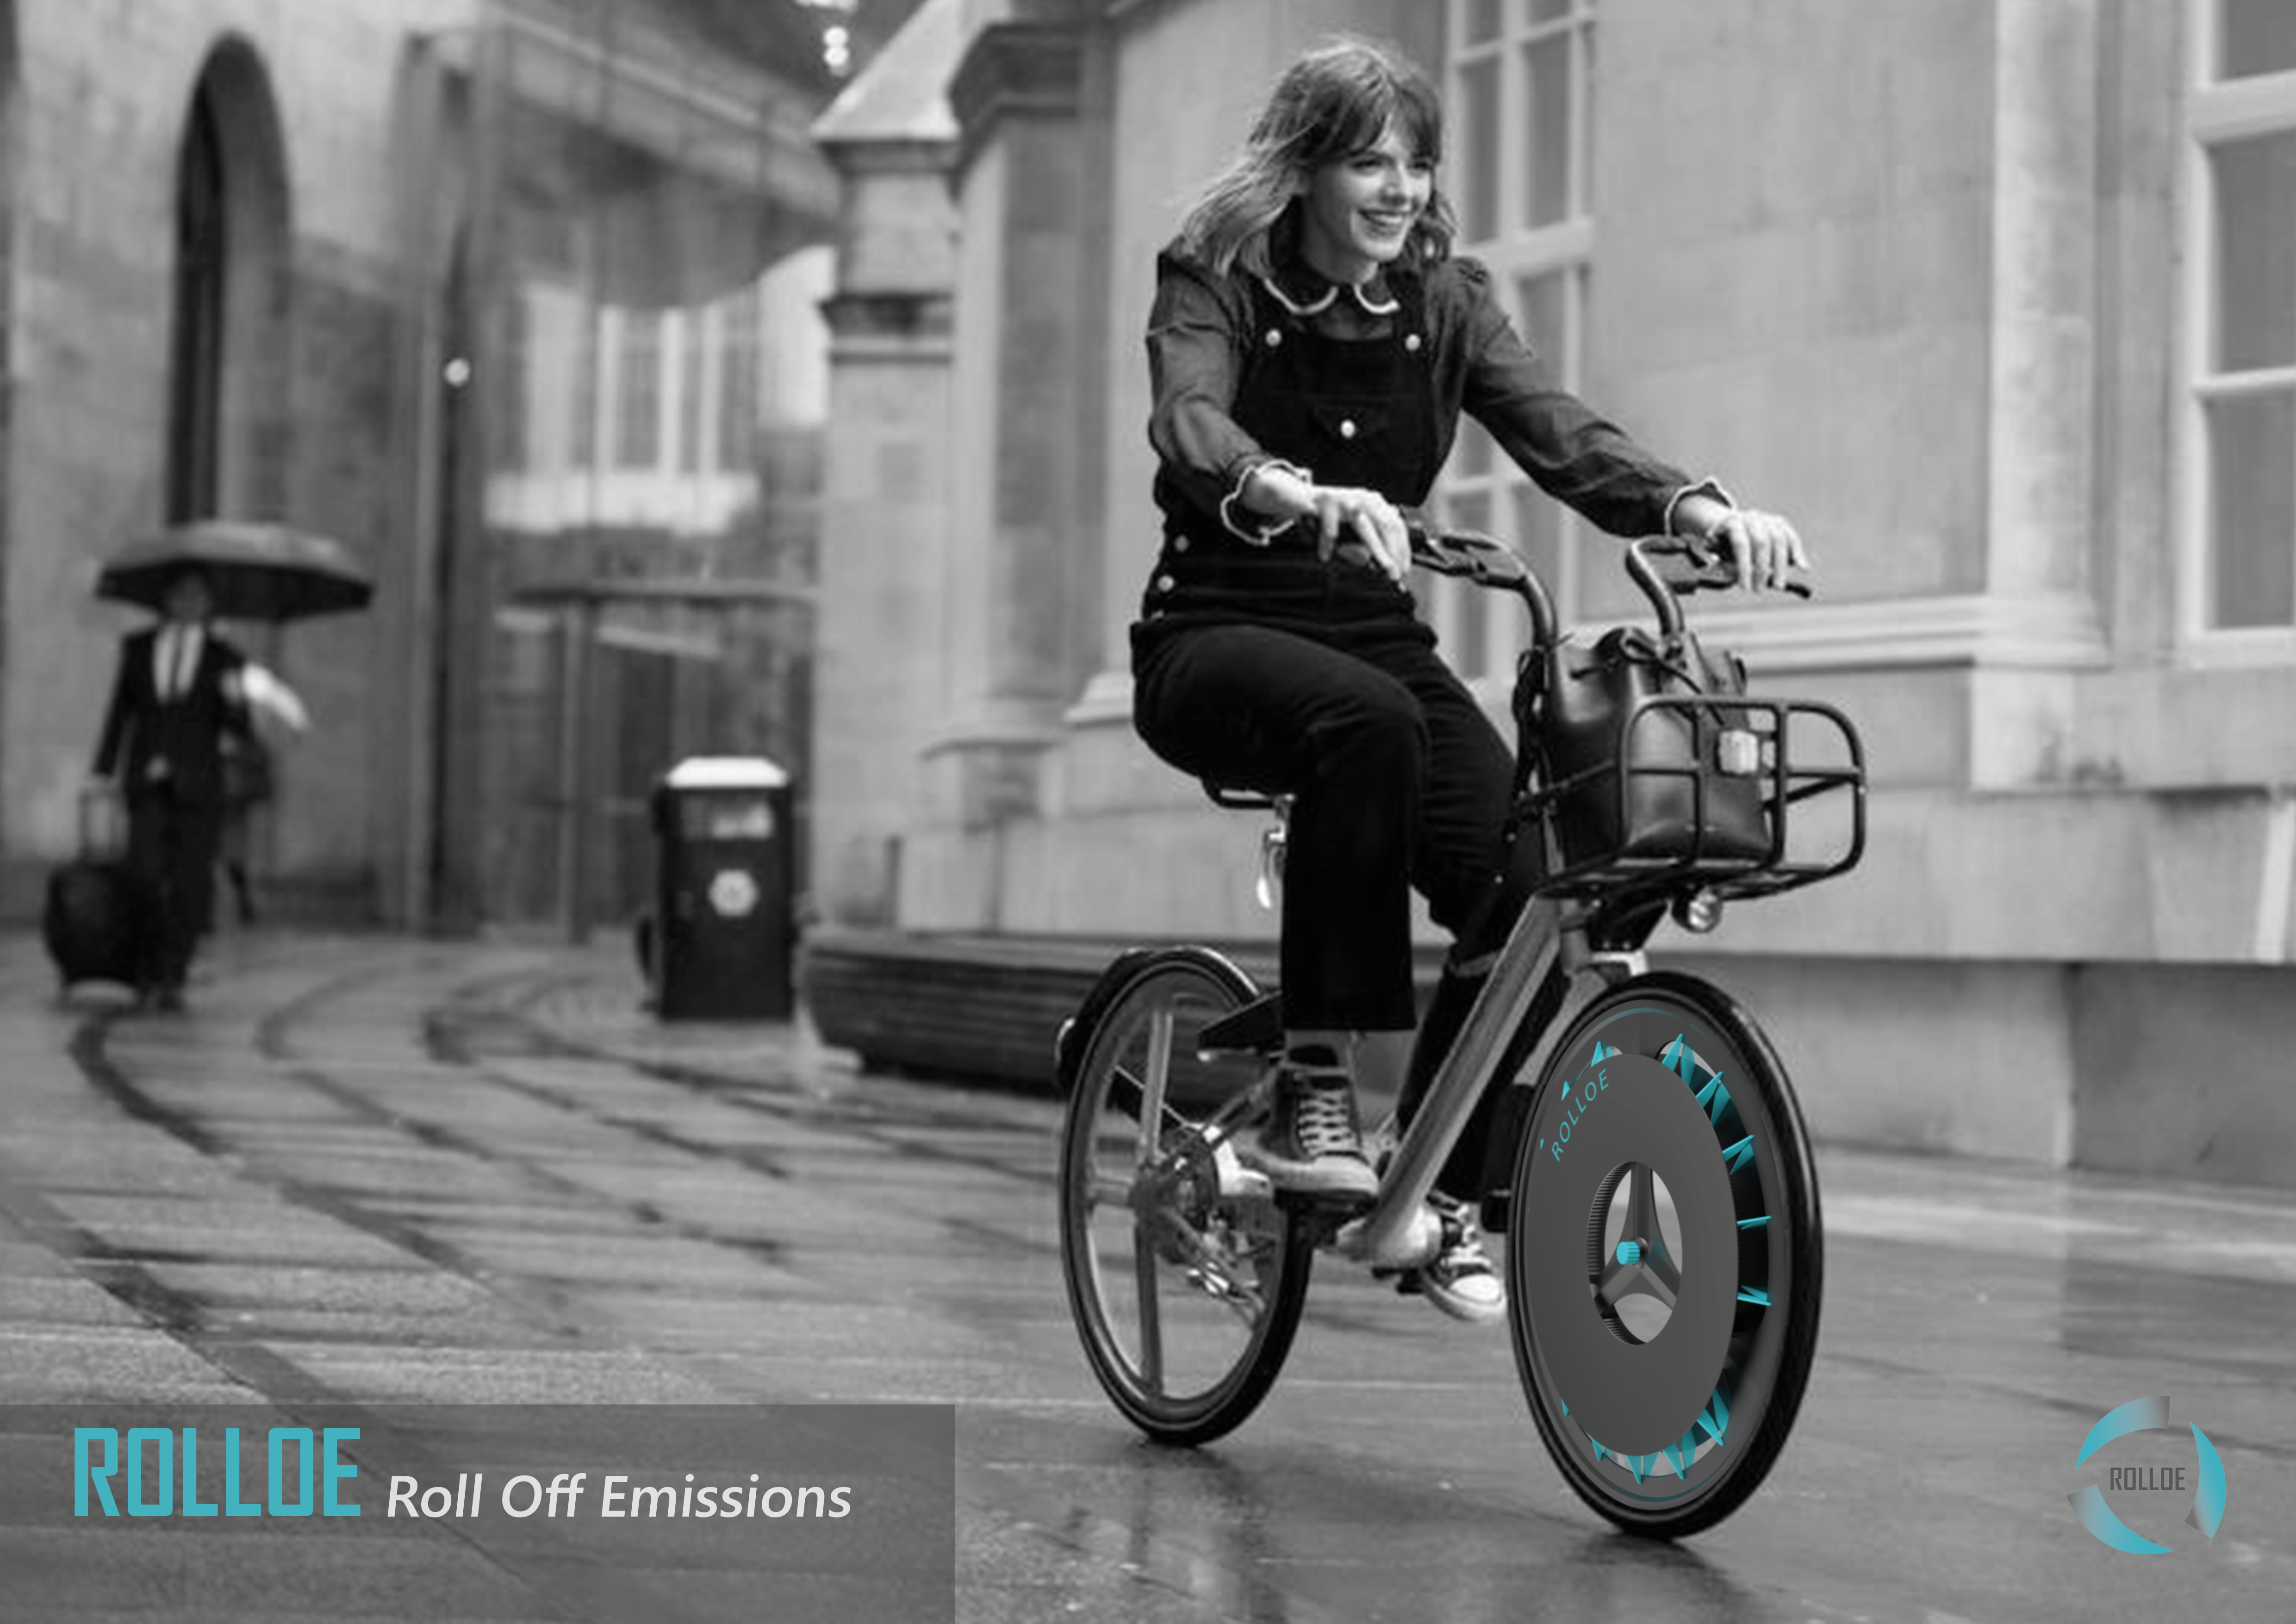 Rolloe Roll Off Emissions. Photo via Kristen Tapping.